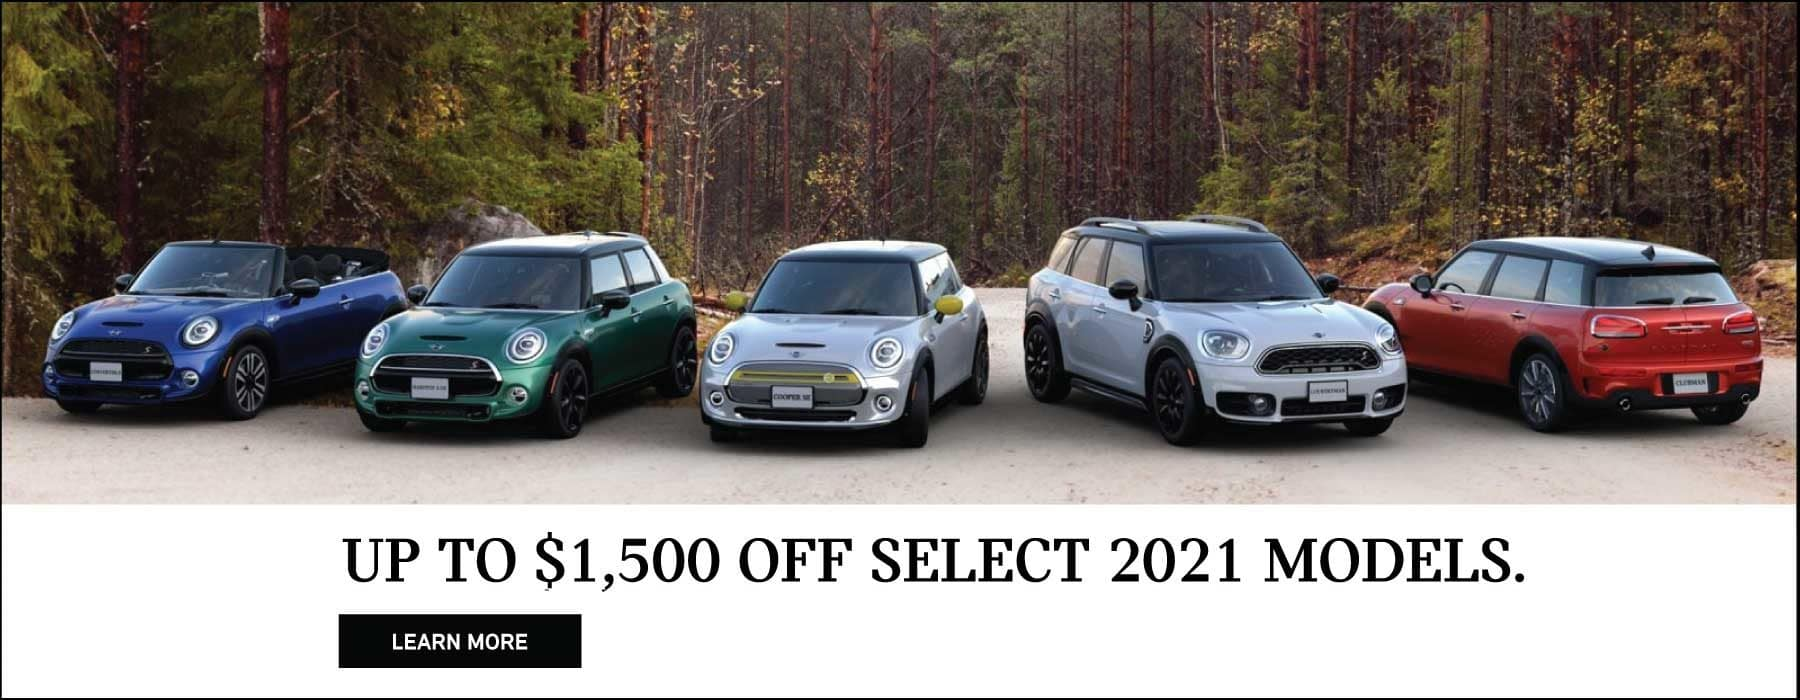 Up to $1500 off select 2021 models.